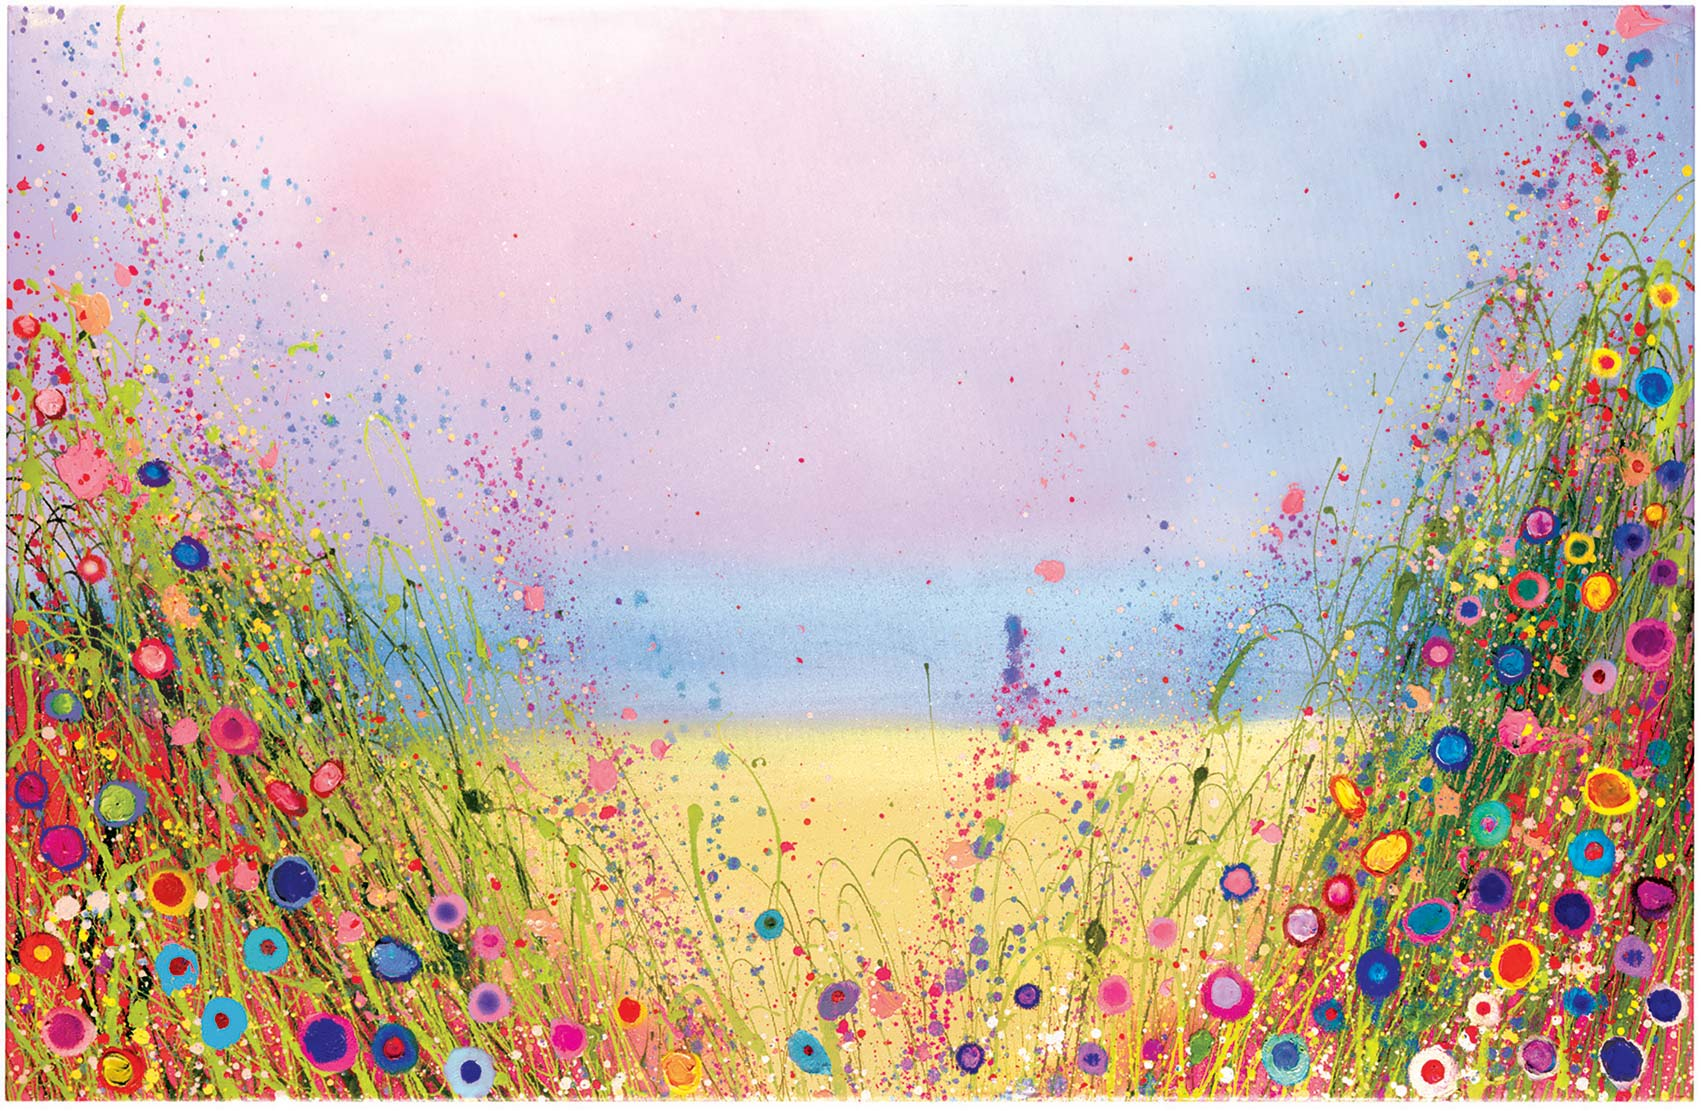 LImited Edition Prints by Yvonne Coomber